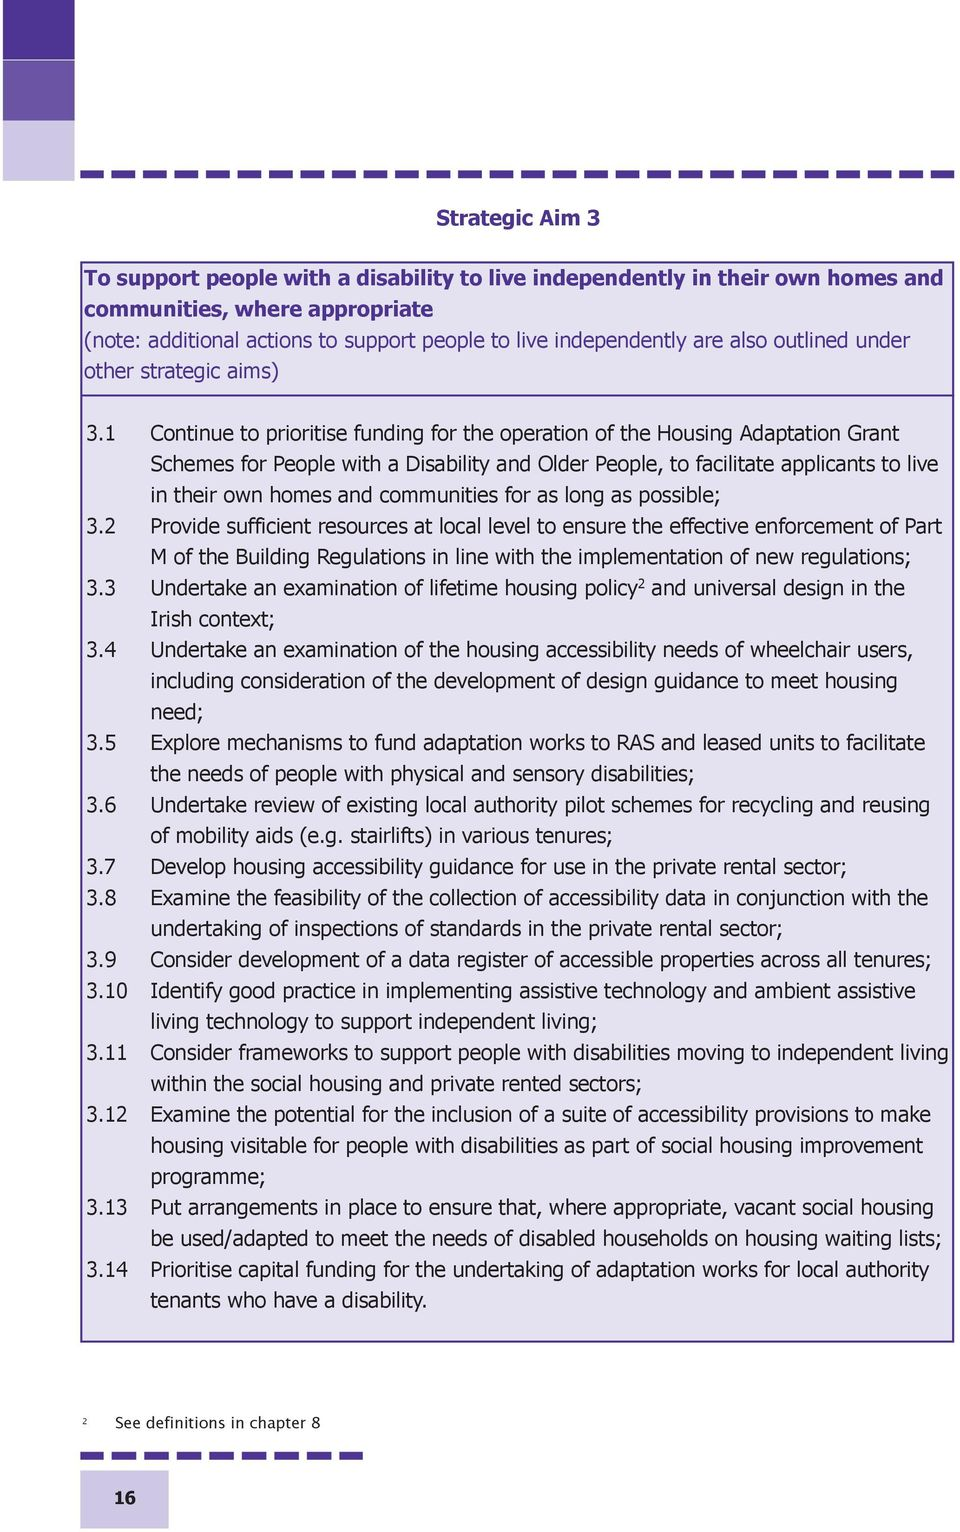 1 Continue to prioritise funding for the operation of the Housing Adaptation Grant Schemes for People with a Disability and Older People, to facilitate applicants to live in their own homes and